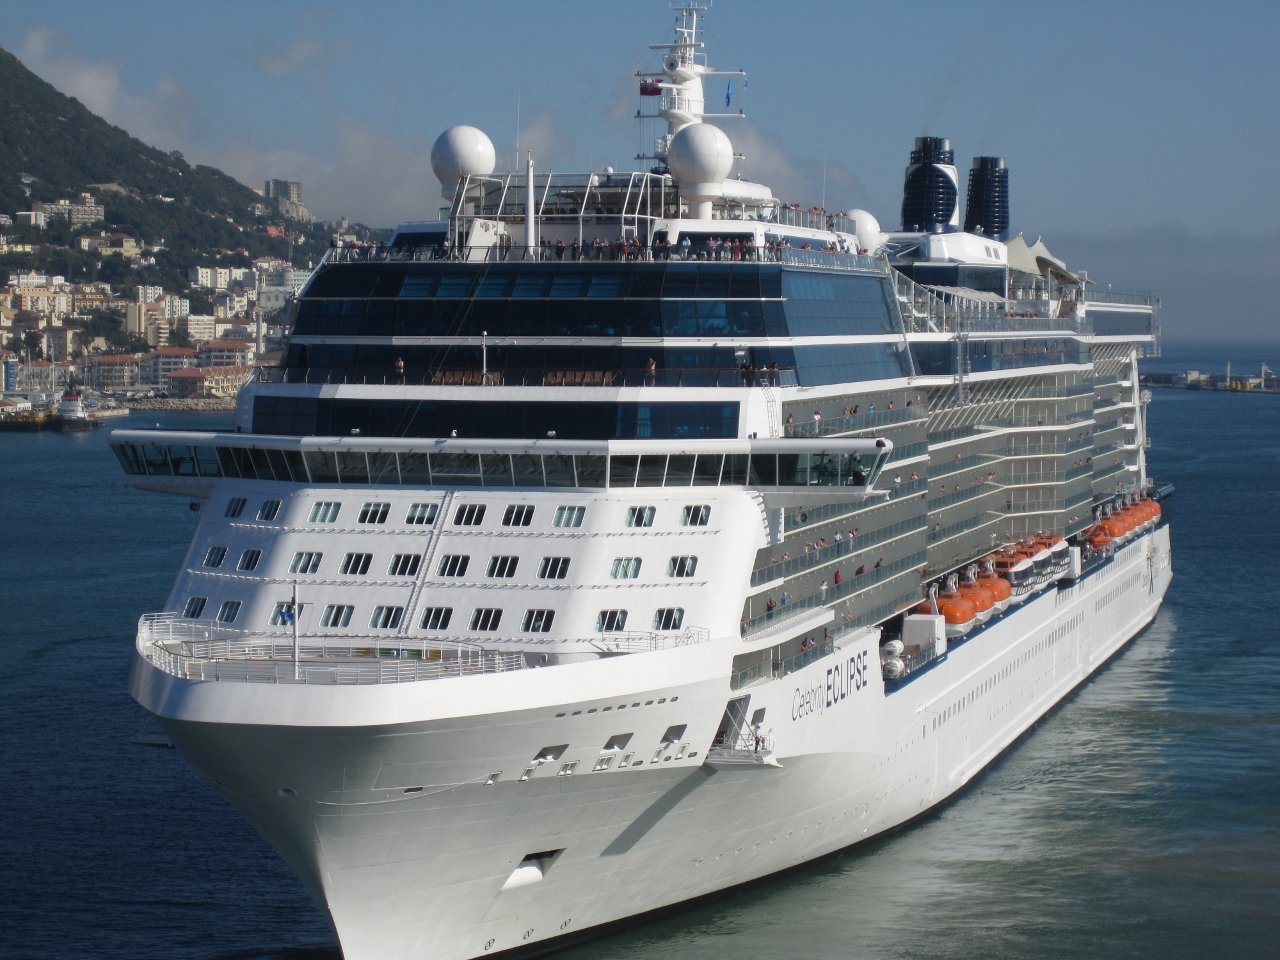 Tour the UK and Russia onboard the Celebrity Eclipse